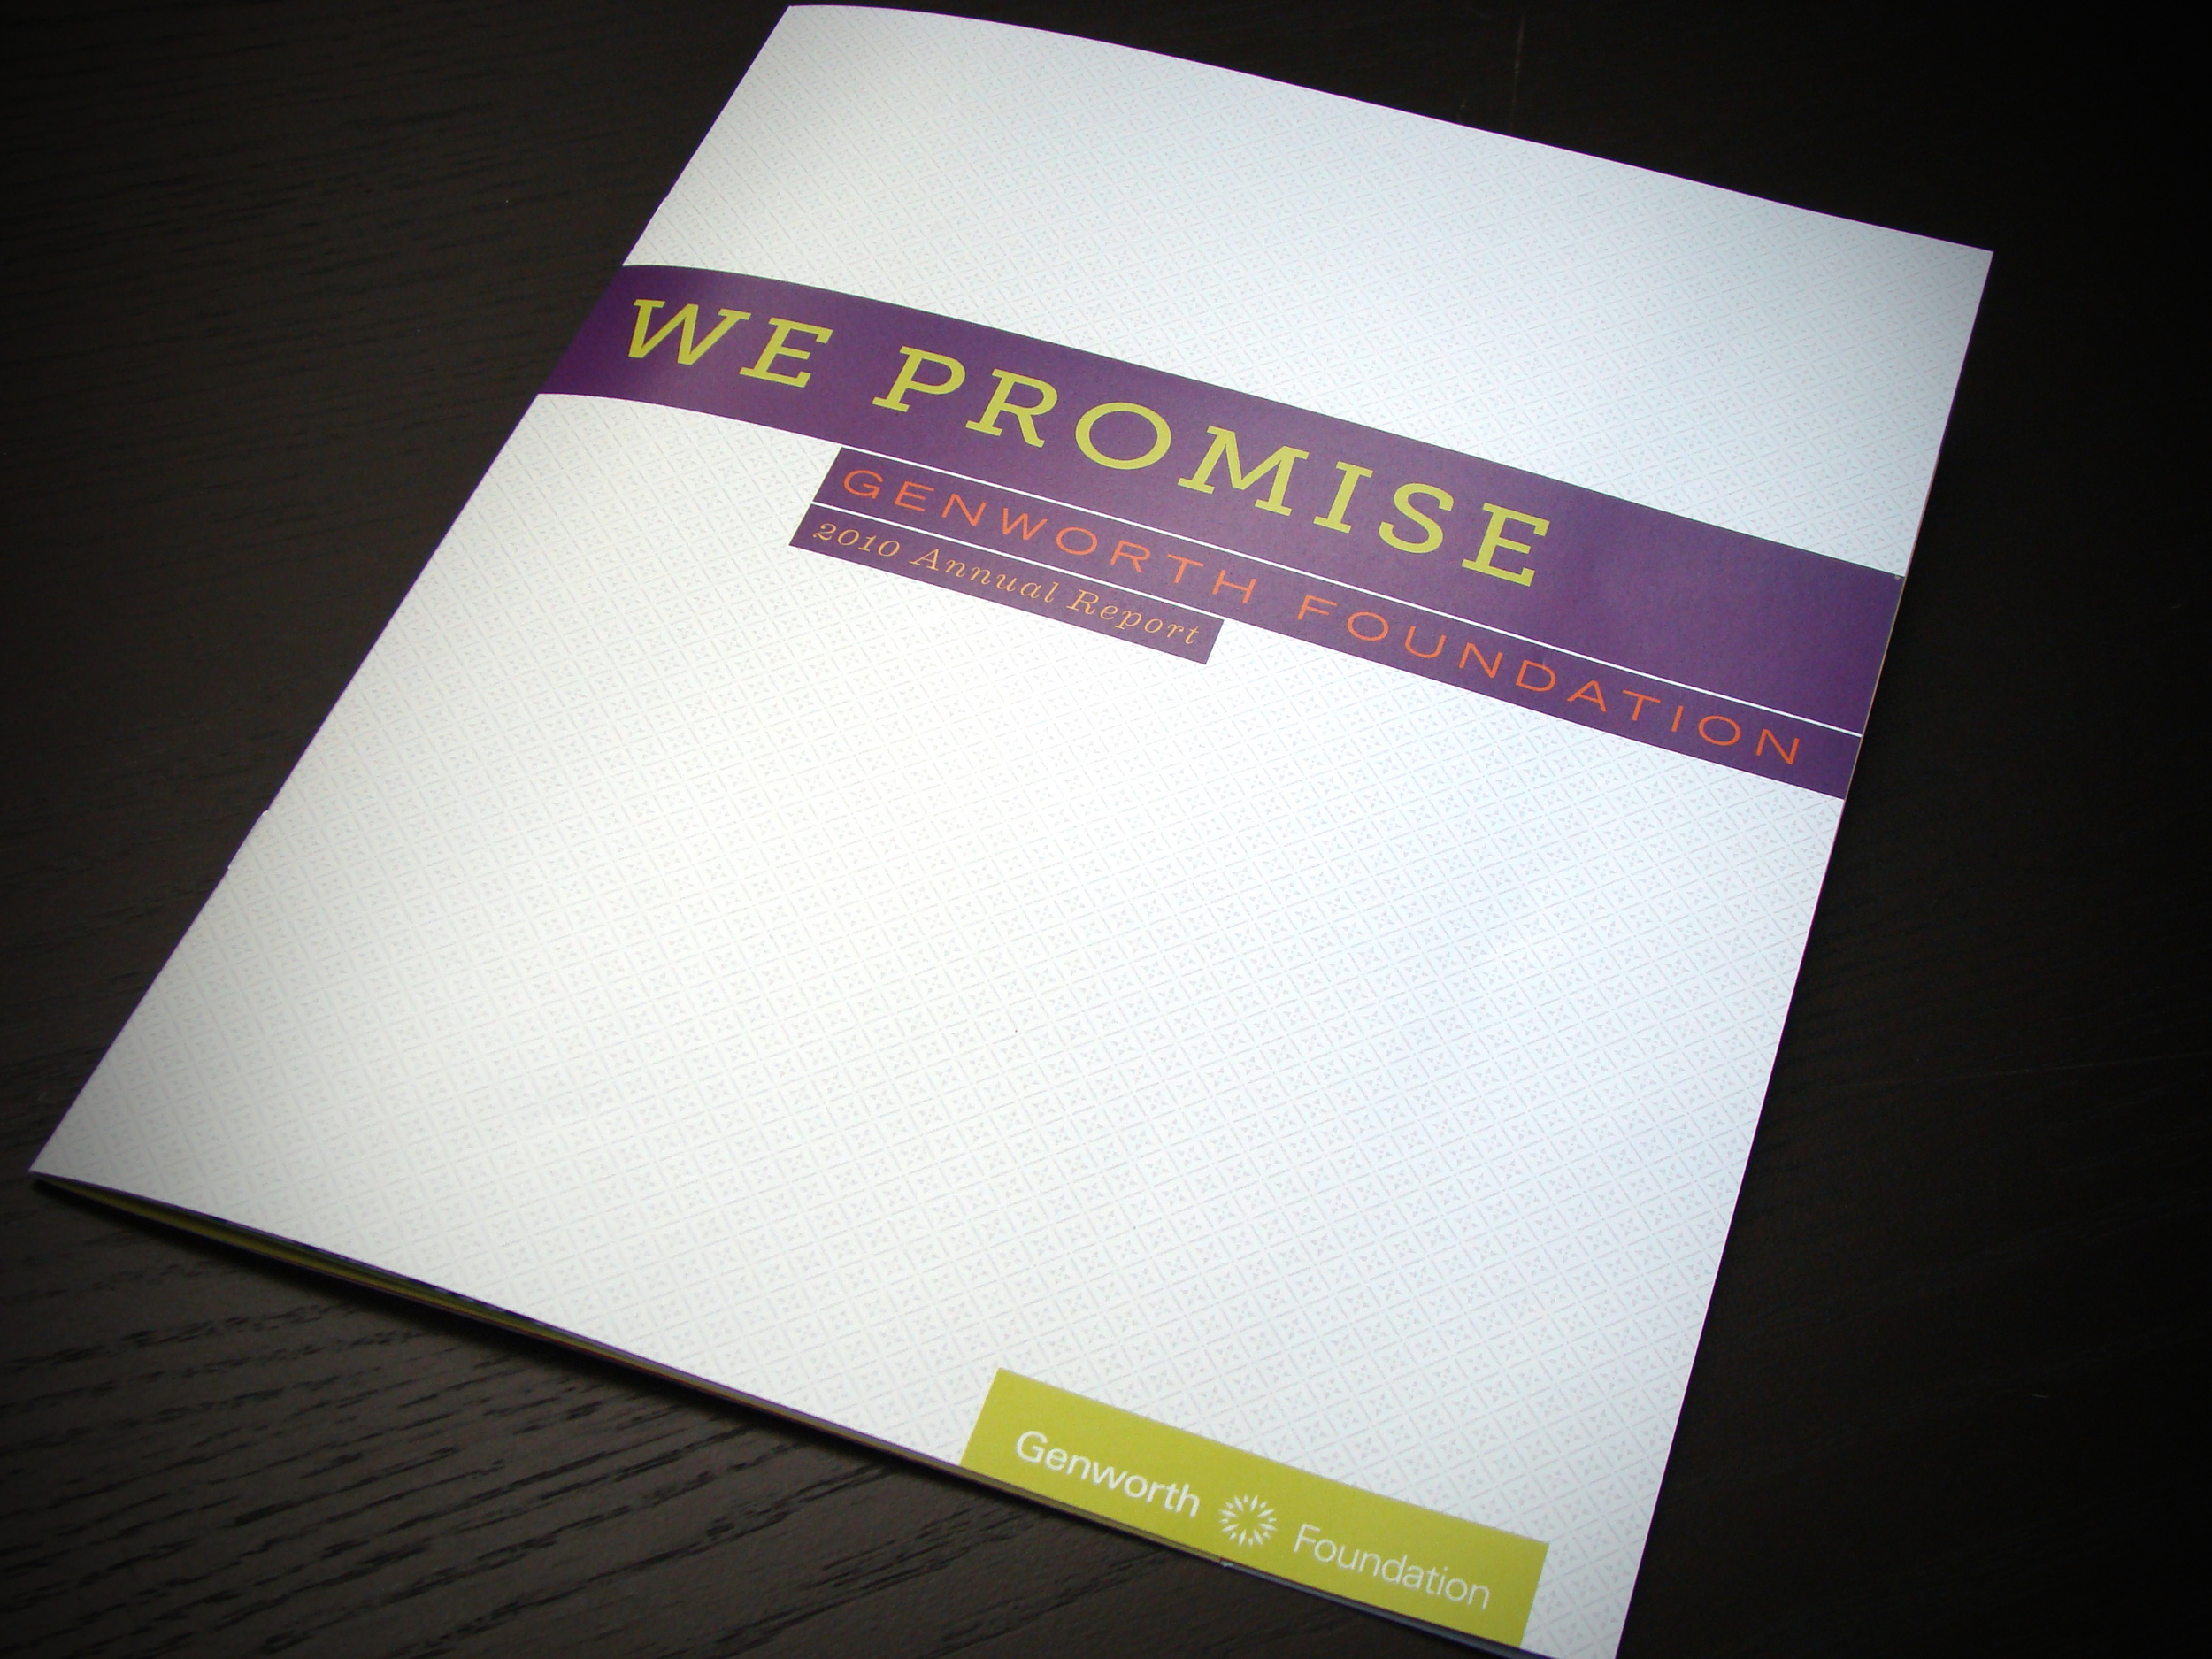 Genworth Foundation Annual Report Front Cover